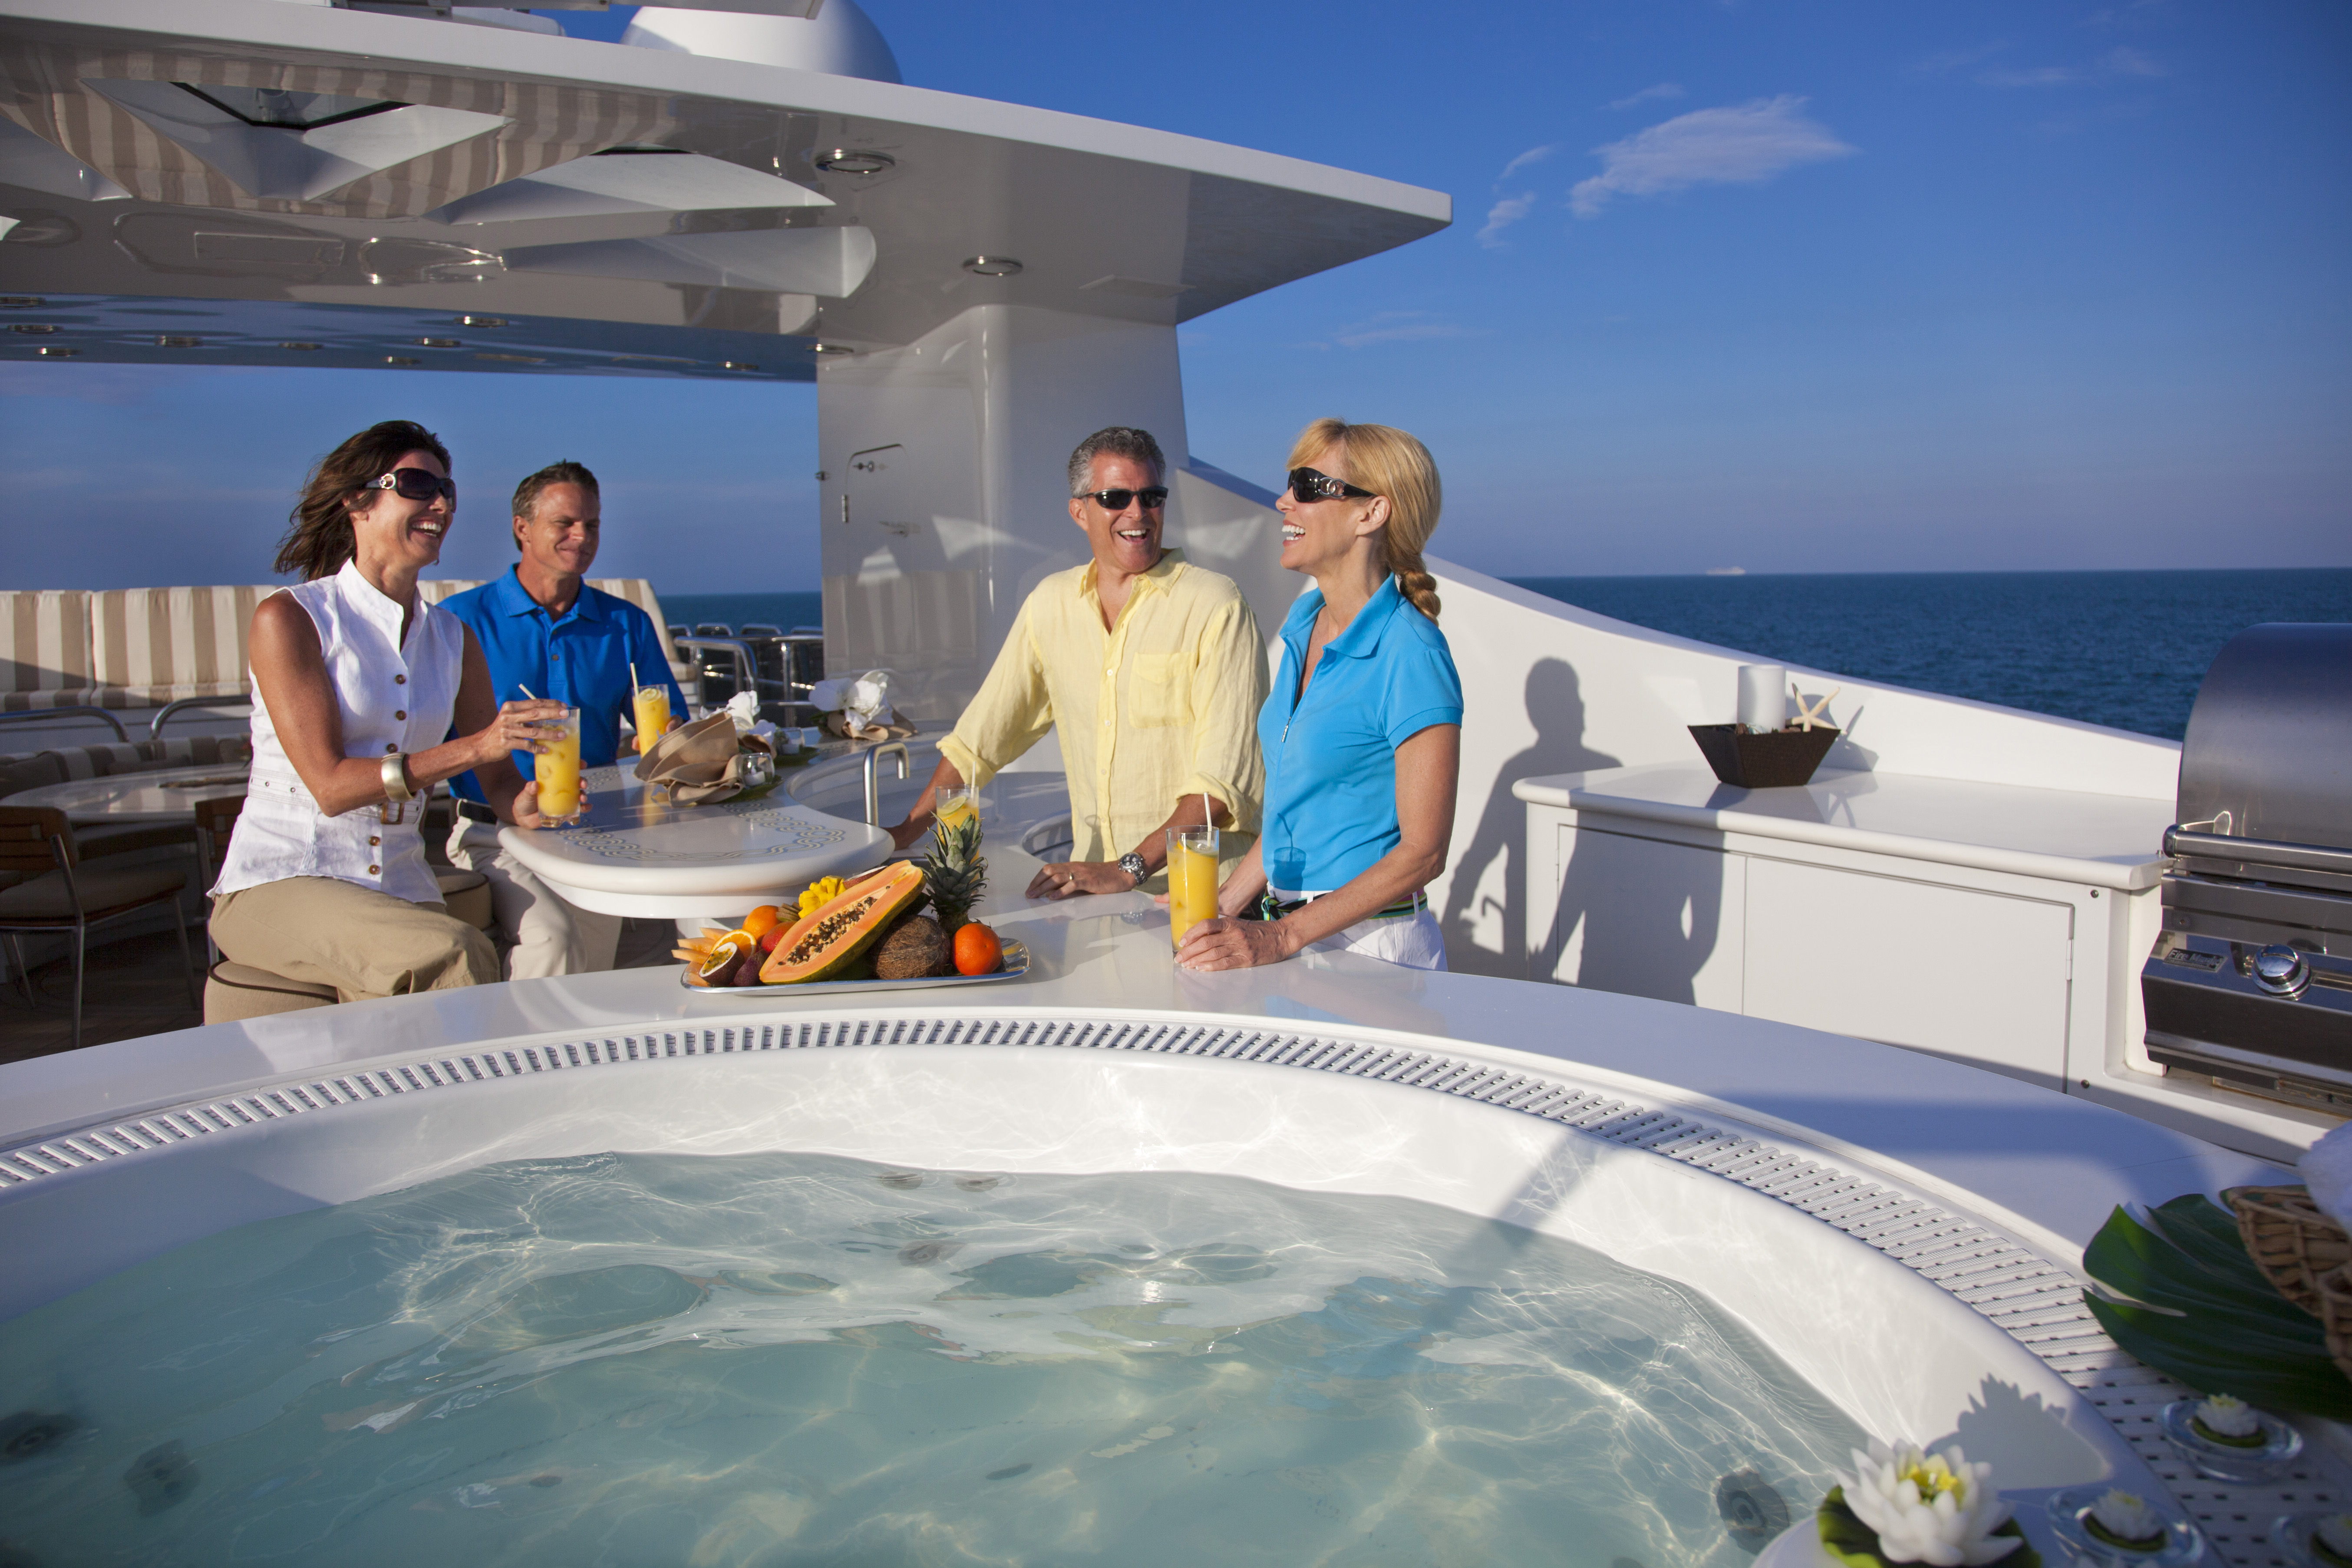 Relax as our luxury yacht crew is there to anticipate your needs while providing the highest standard of service.